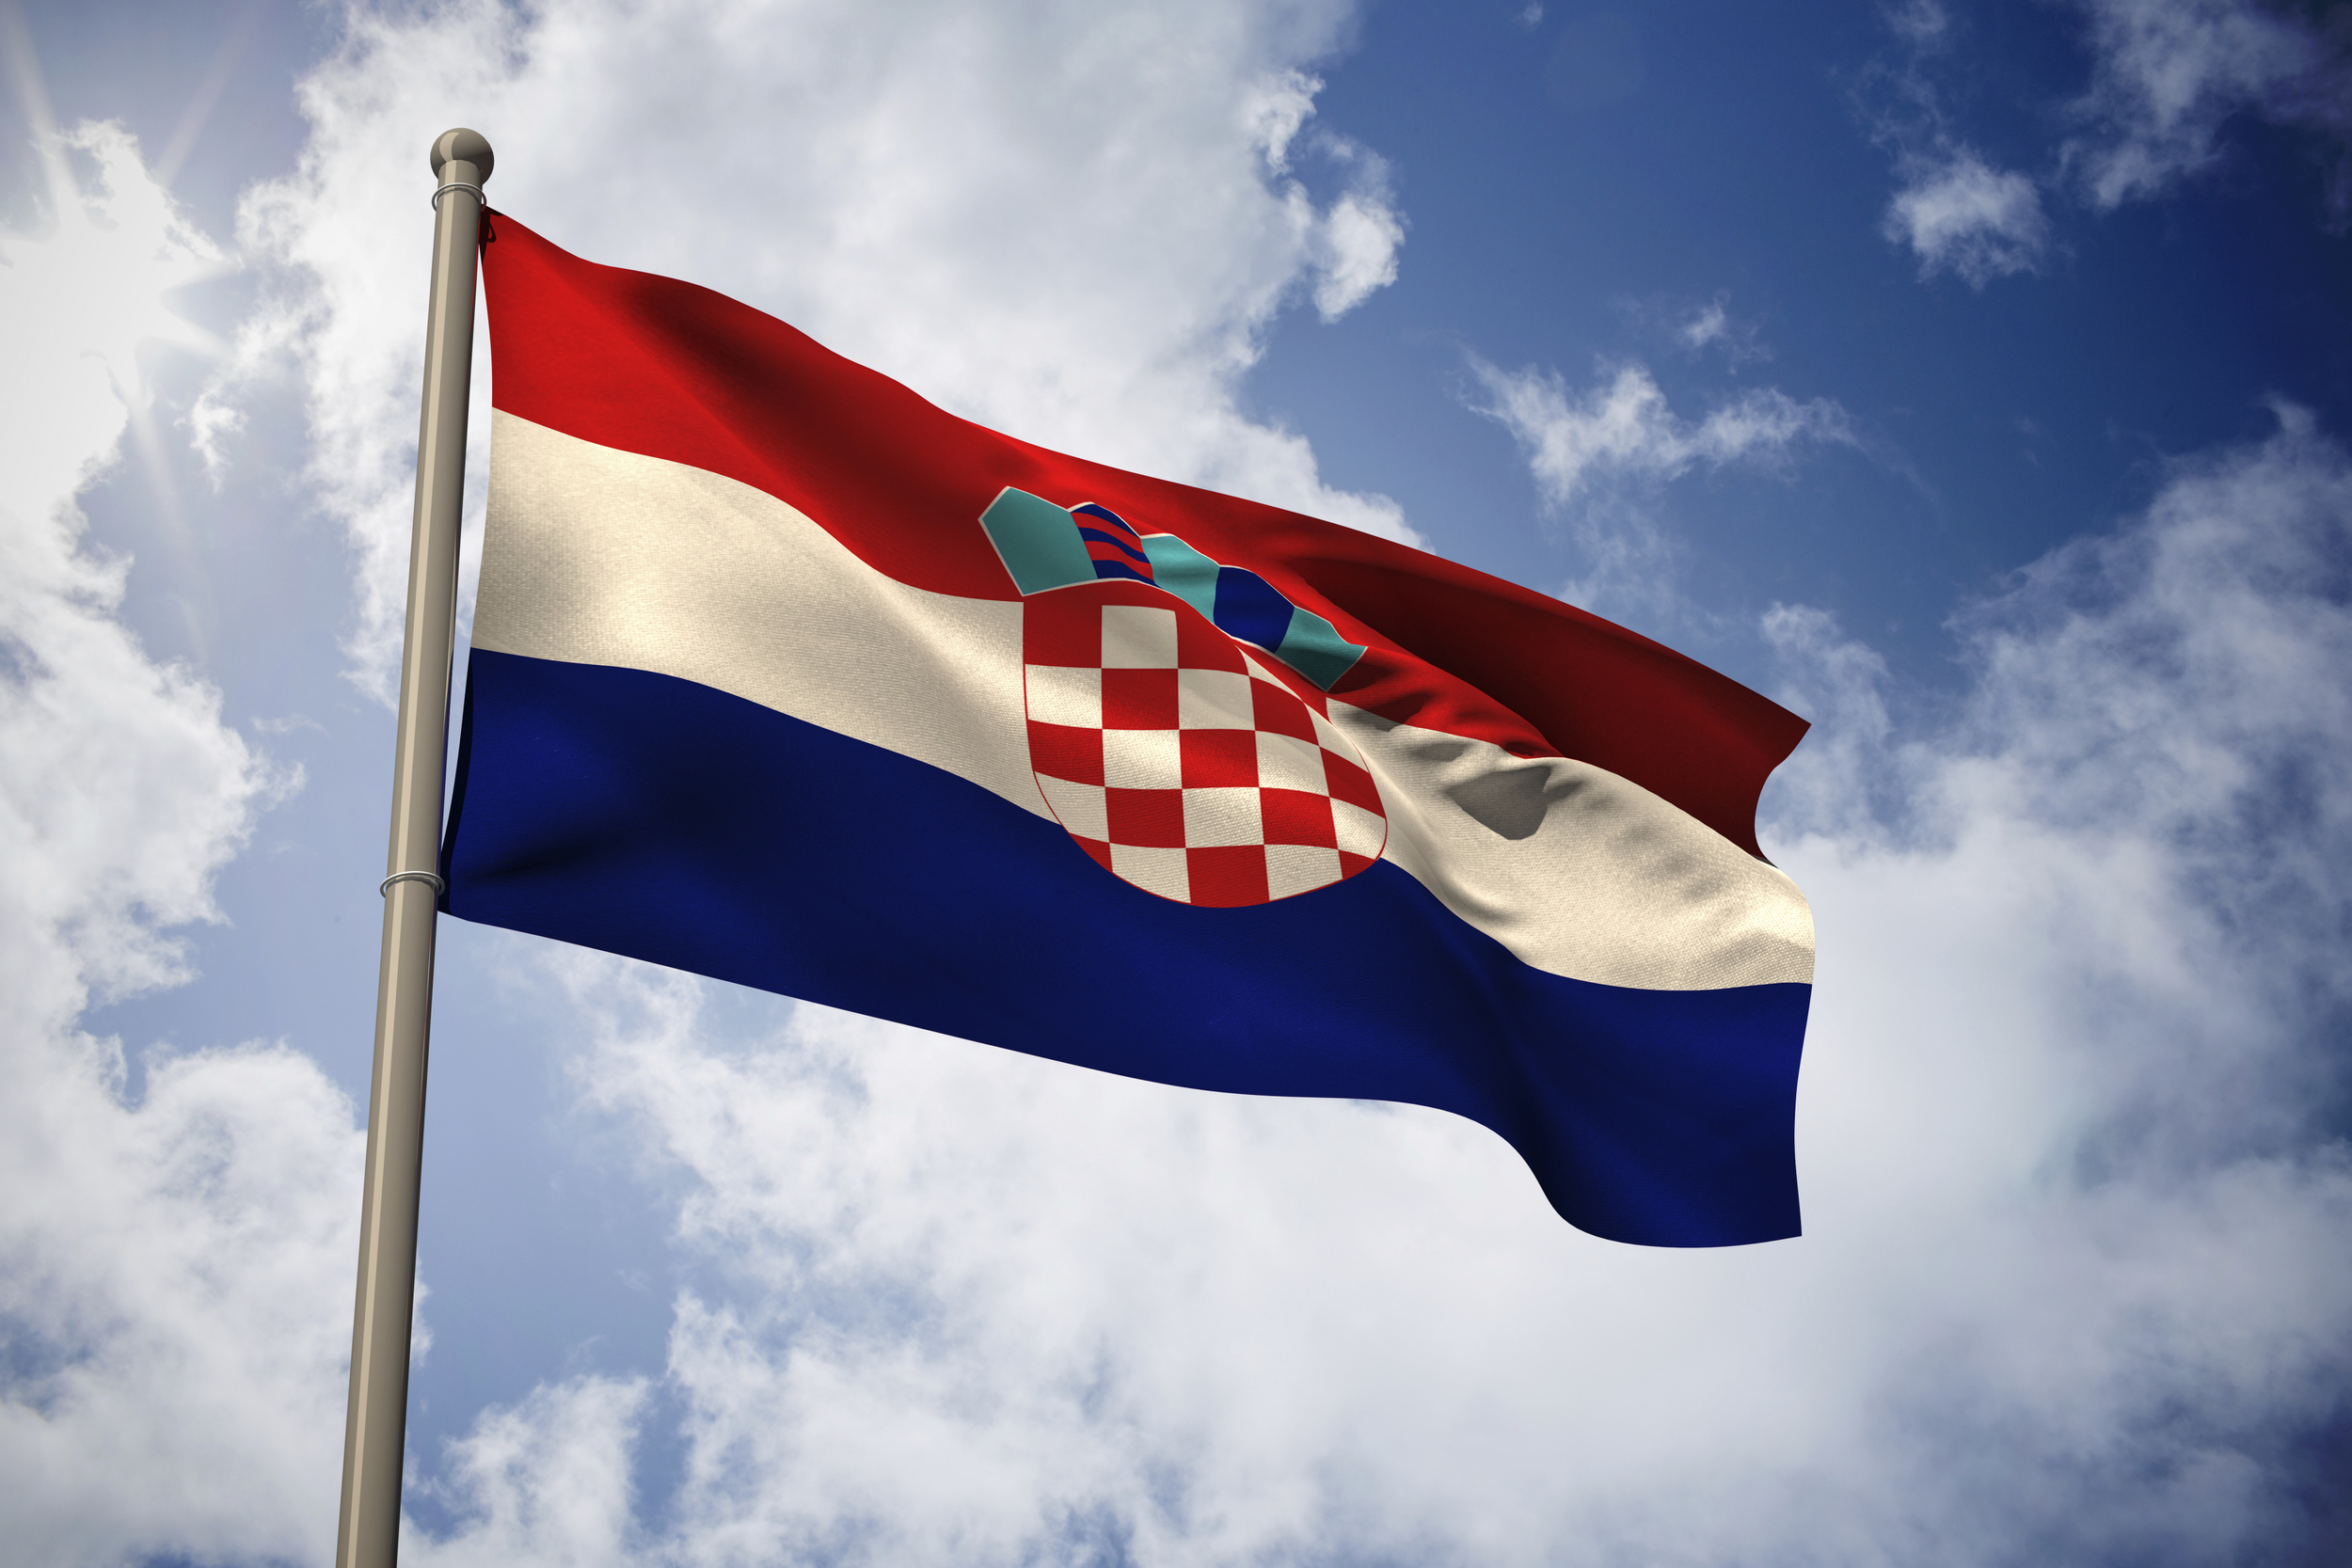 The Croatian flag. To add to the confusion over whether this podcast is about Croatia or not.